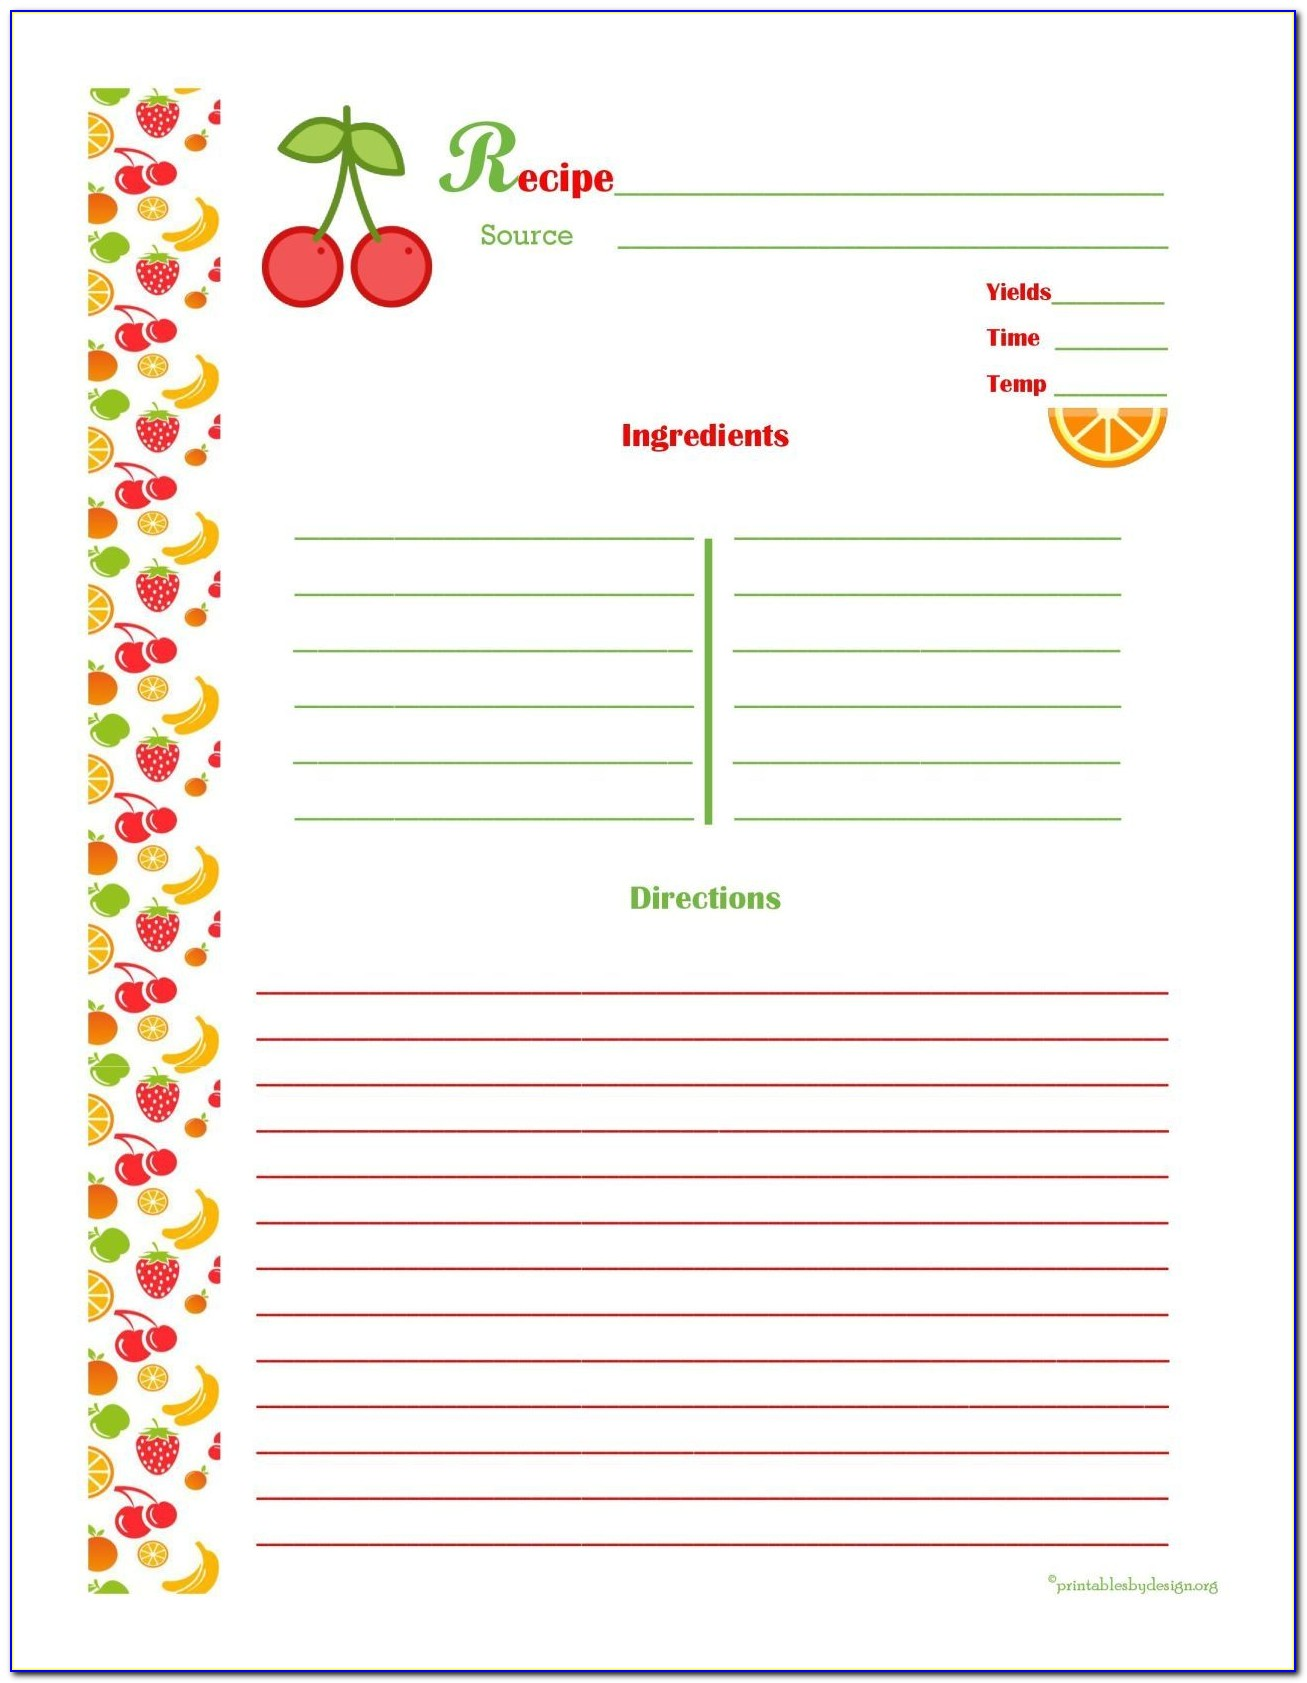 Free 4x6 Recipe Card Templates For Microsoft Word